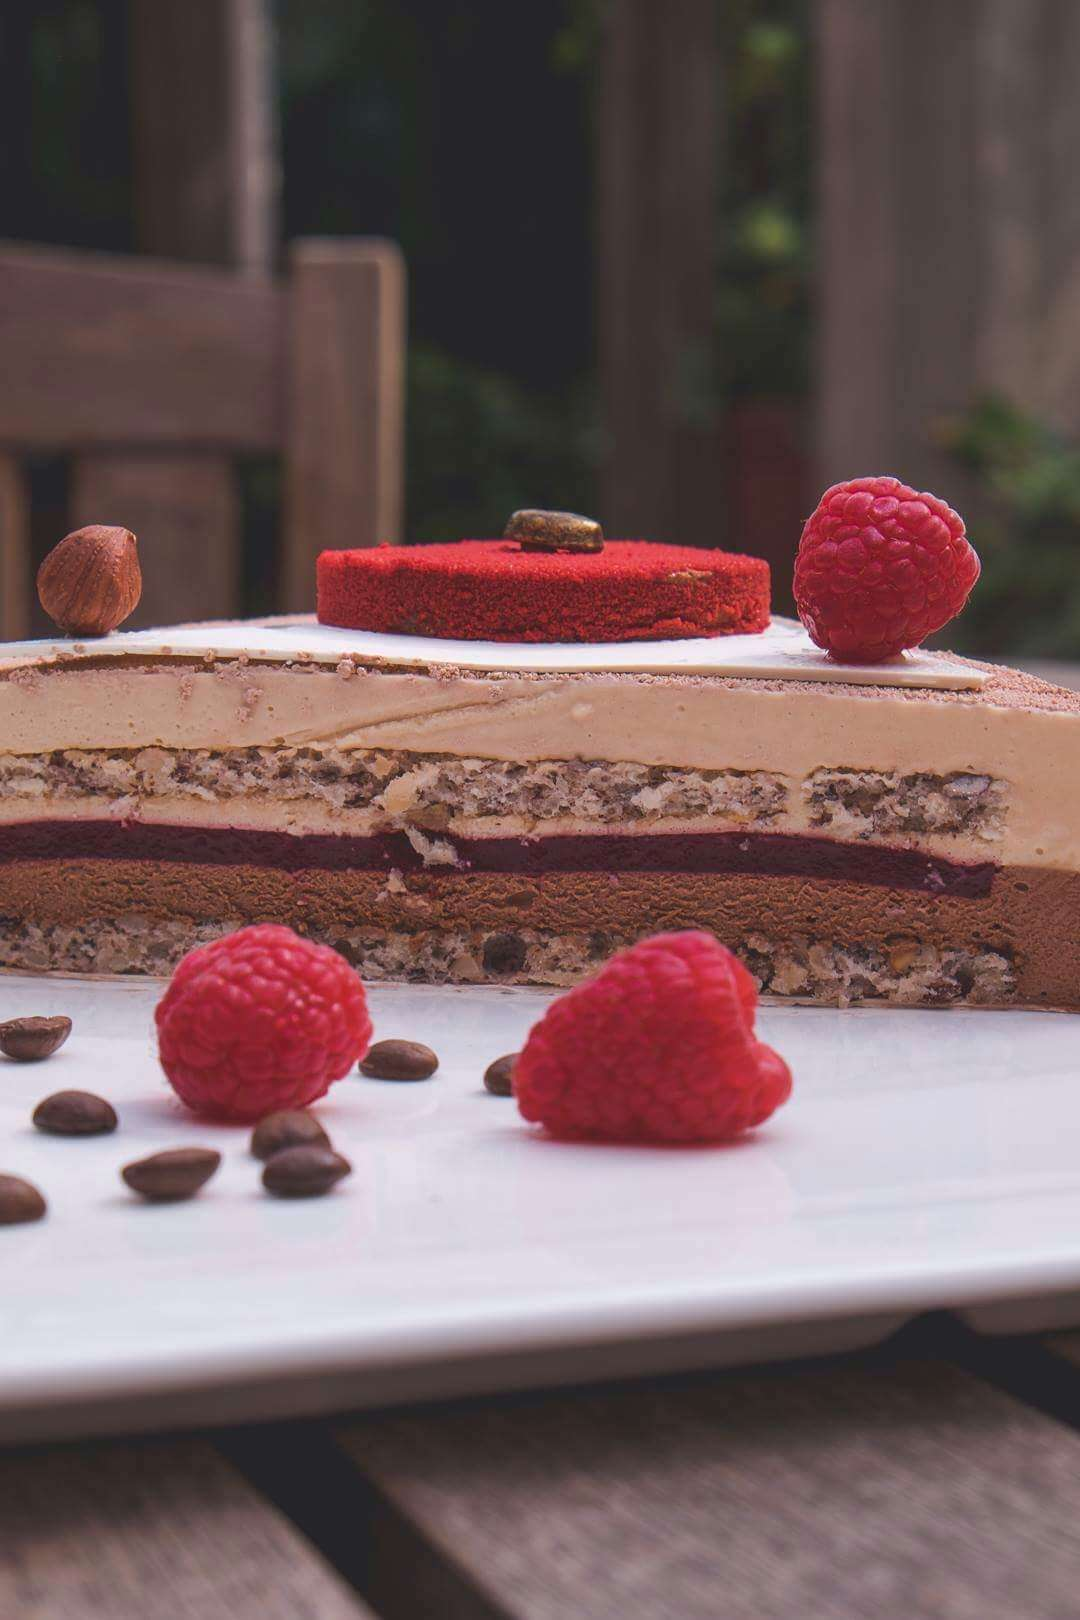 Closeup showing the layers of Grand Lapa's hazelnut coffee and chocolate raspberry layer cake